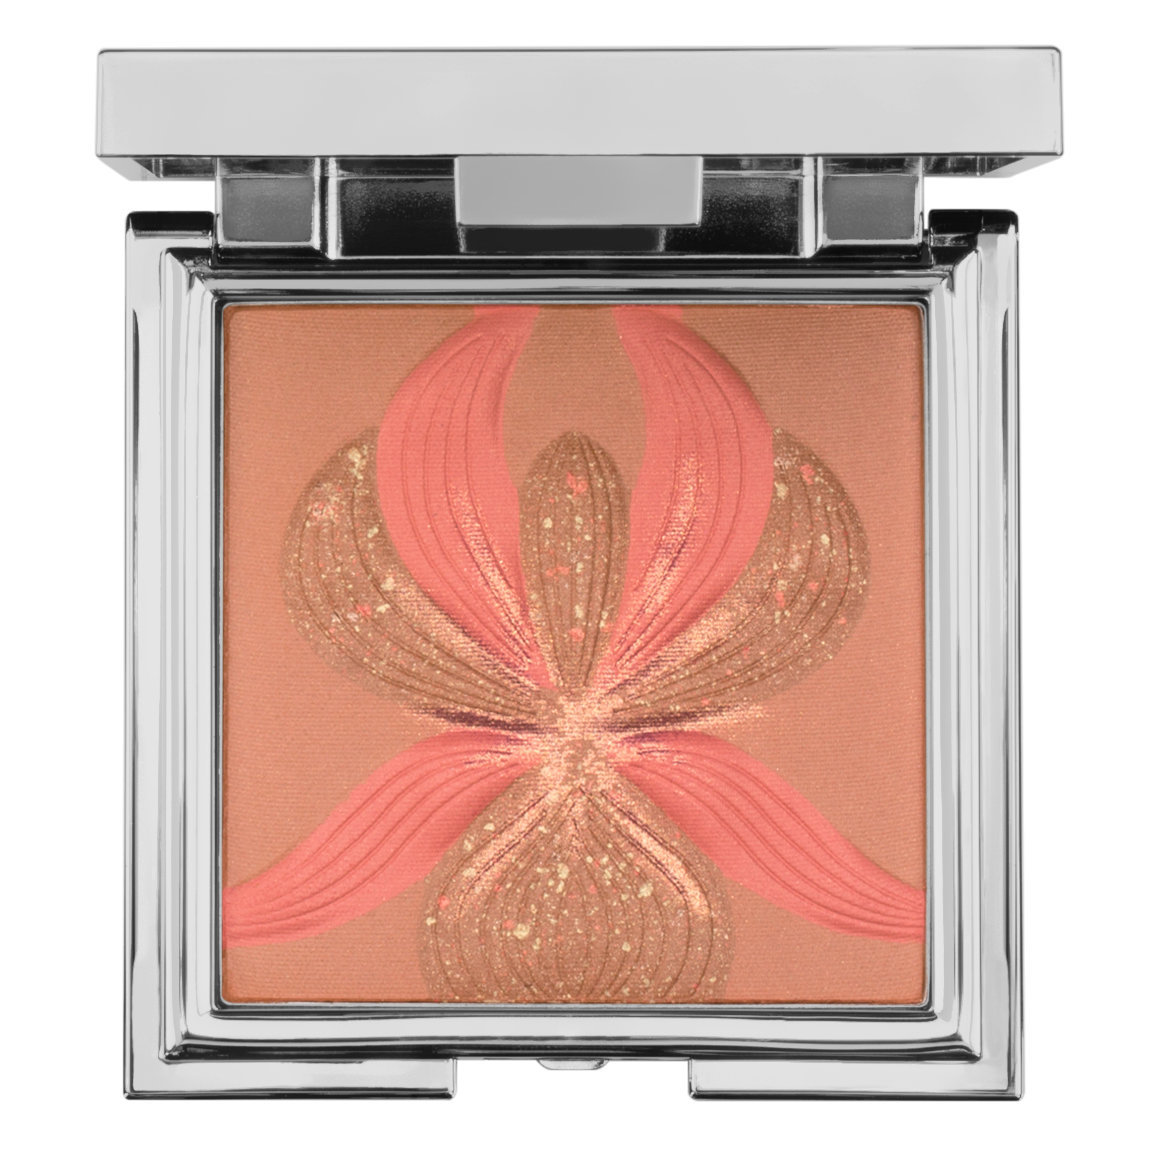 Sisley-Paris L'Orchidée Highlighting Blush Original product smear.